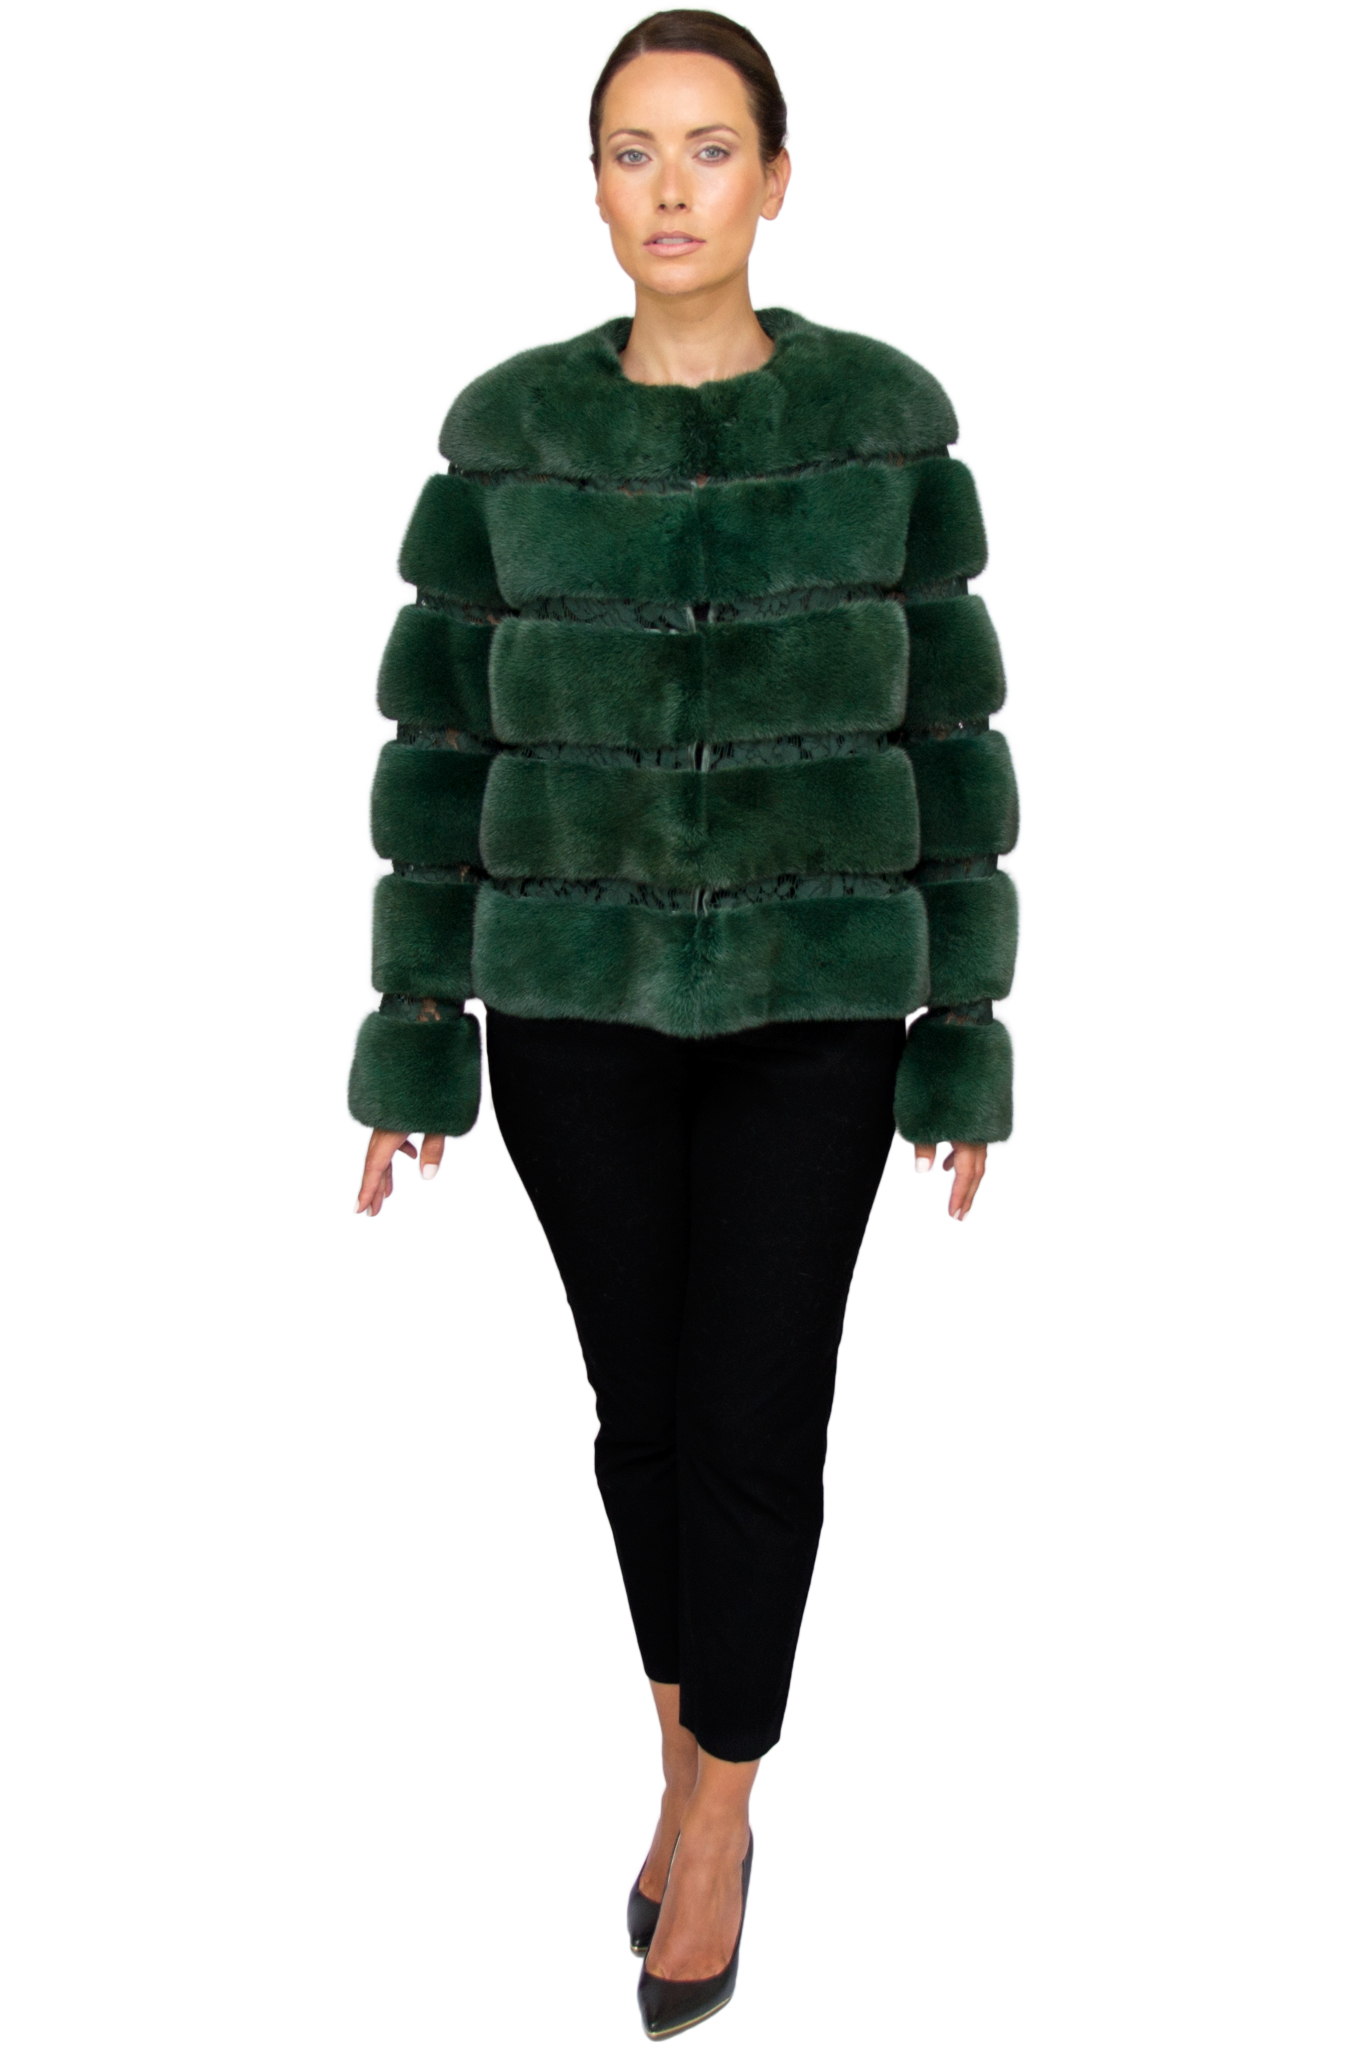 Eve - Lace and Mink Coat - Front.jpg